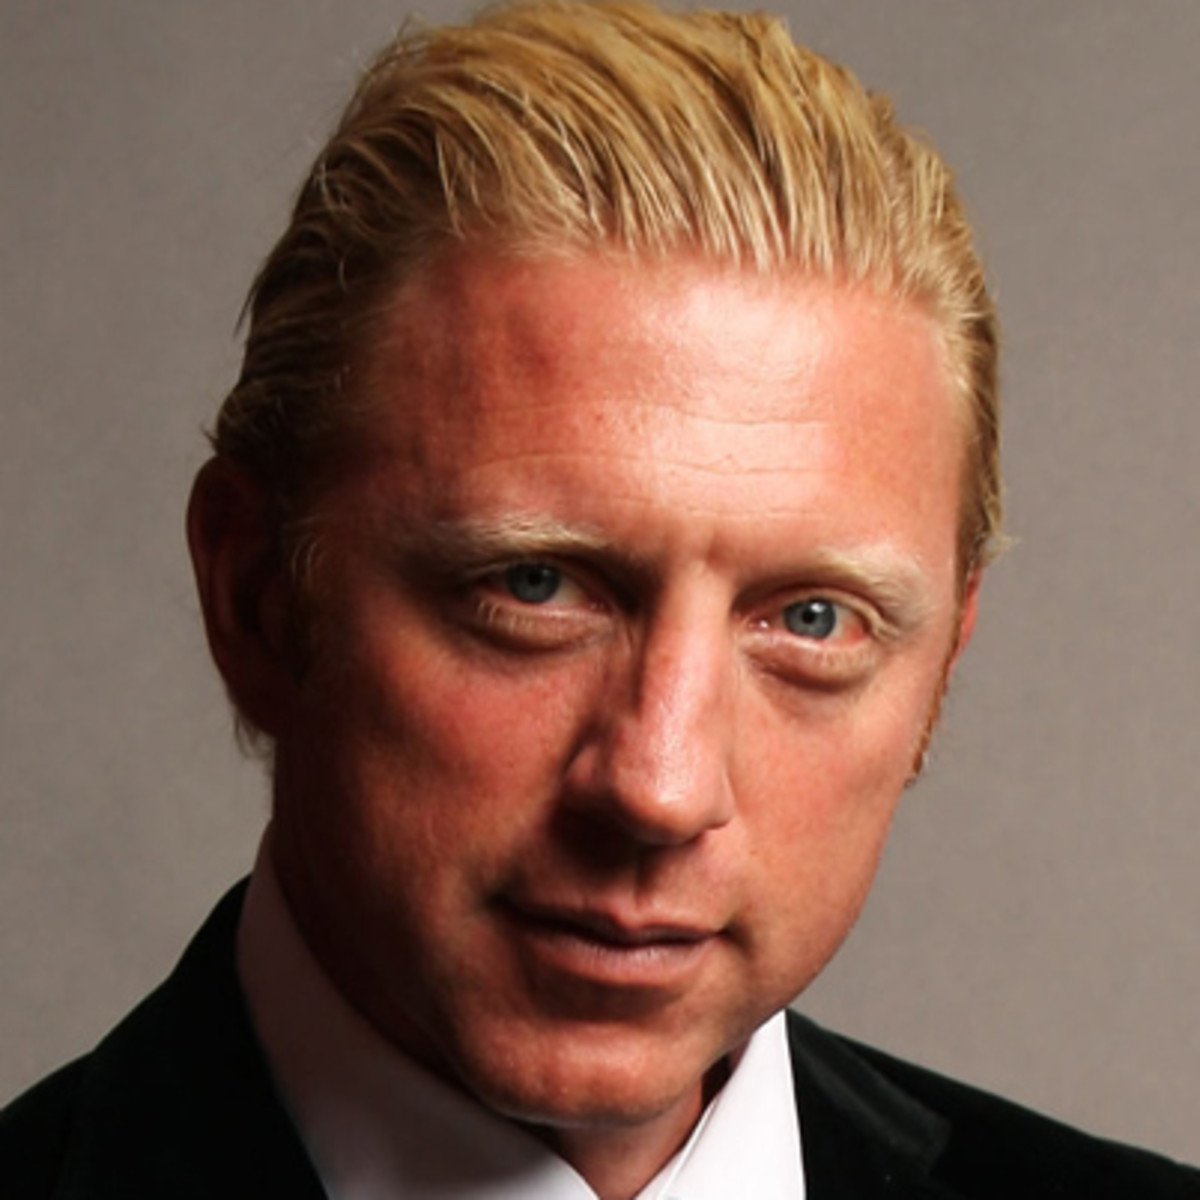 Boris Becker Tennis Player Biography